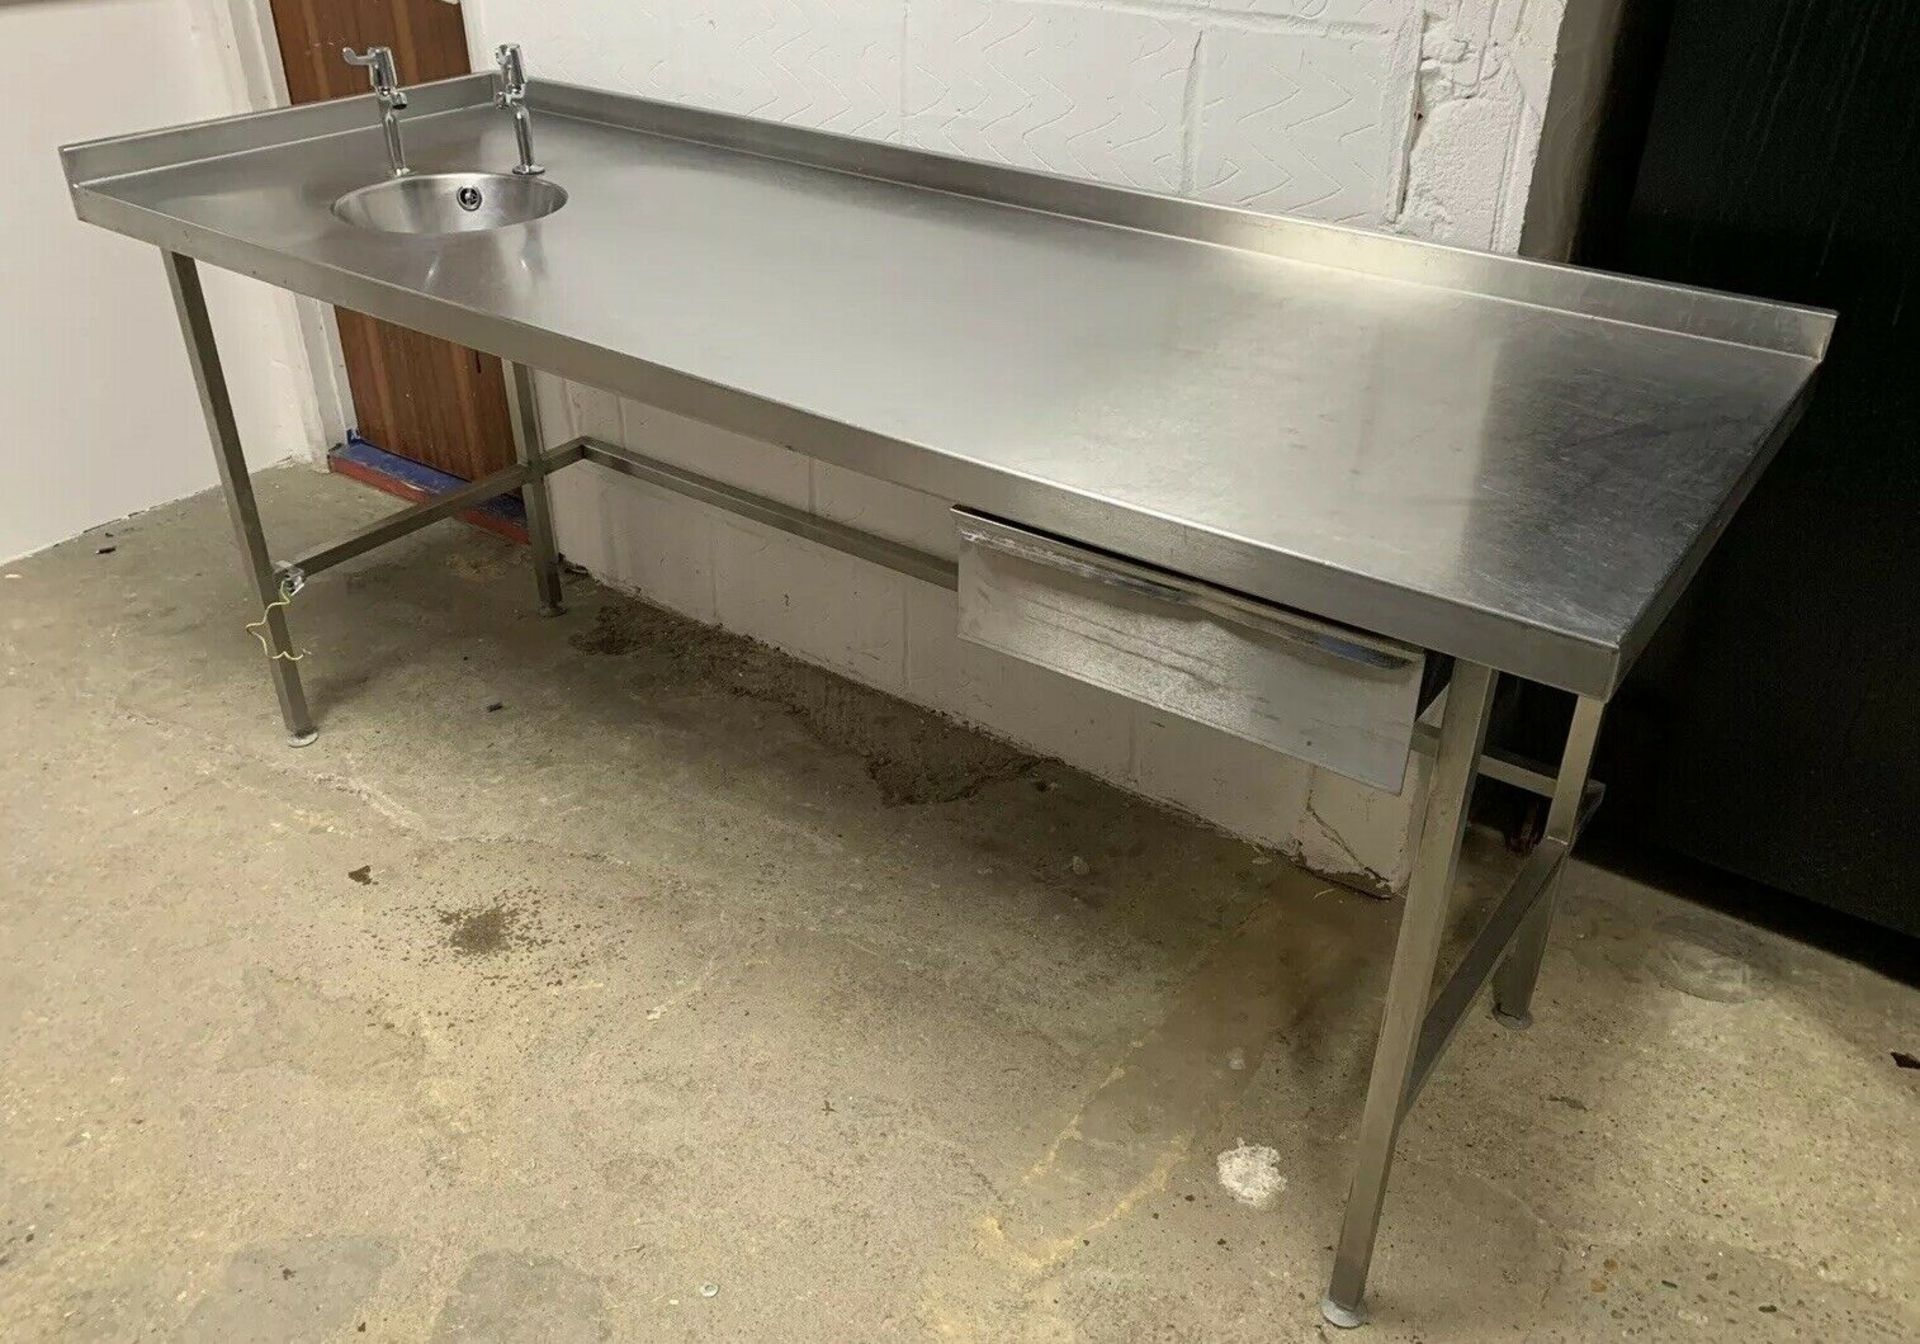 Lot 85 - Stainless Steel Prep Table With Handwash Sink Corner Upstand And Drawer